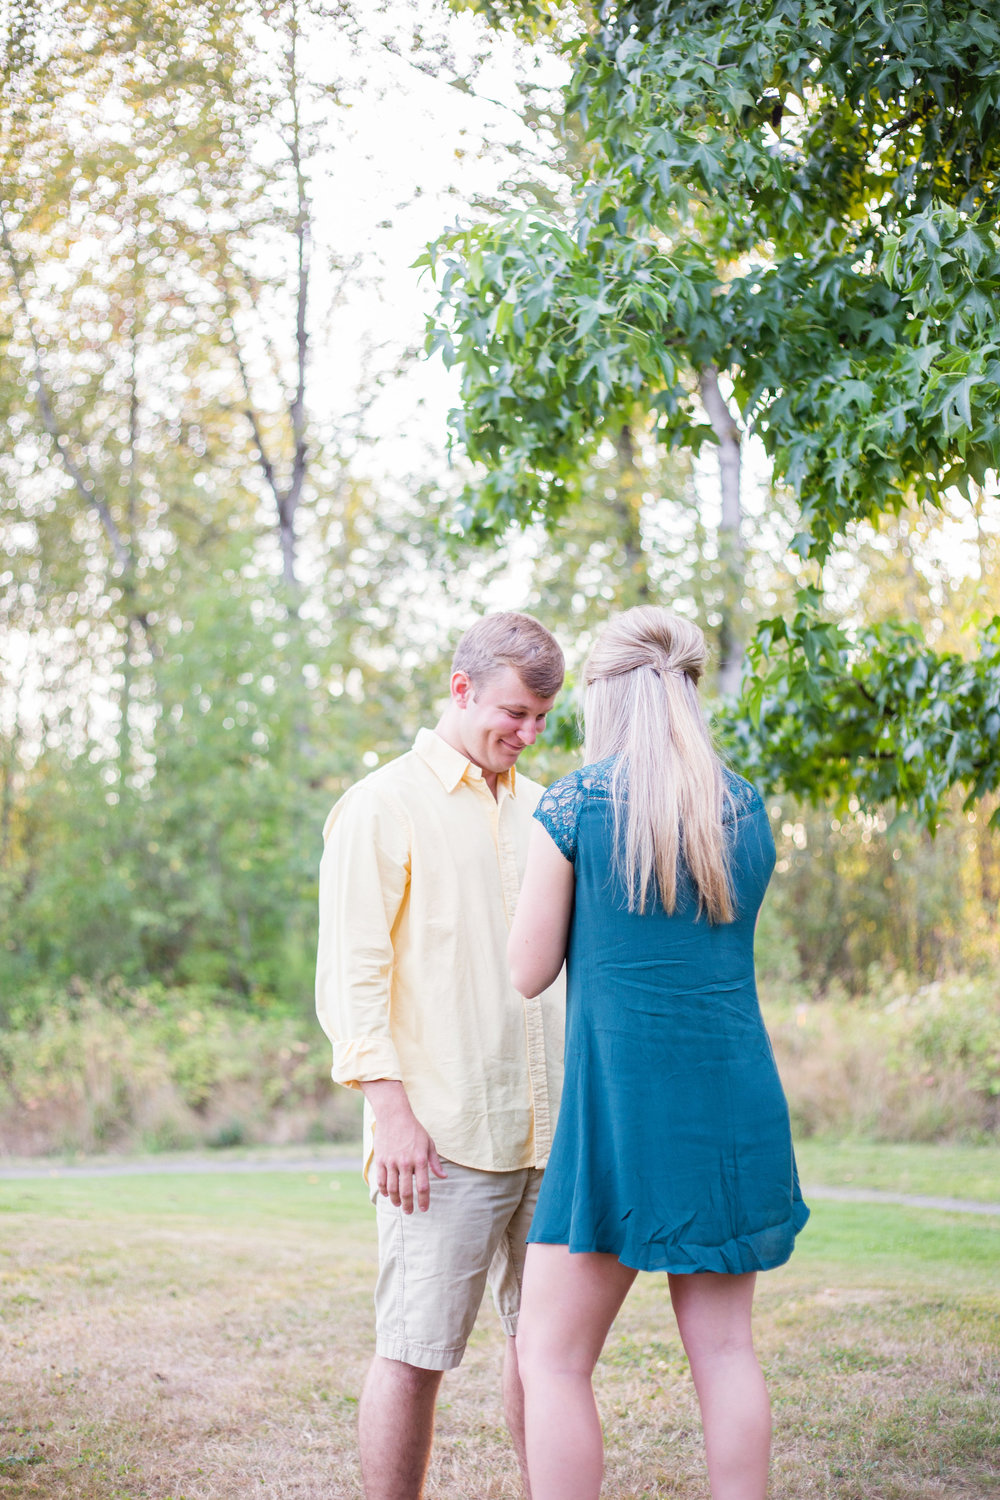 Shylynn Dewey Photography Photographer Seattle Wedding Engagement Tacoma Auburn Pierce King Kitsap Pierce County Surprise Engagement Session Surprise Proposal